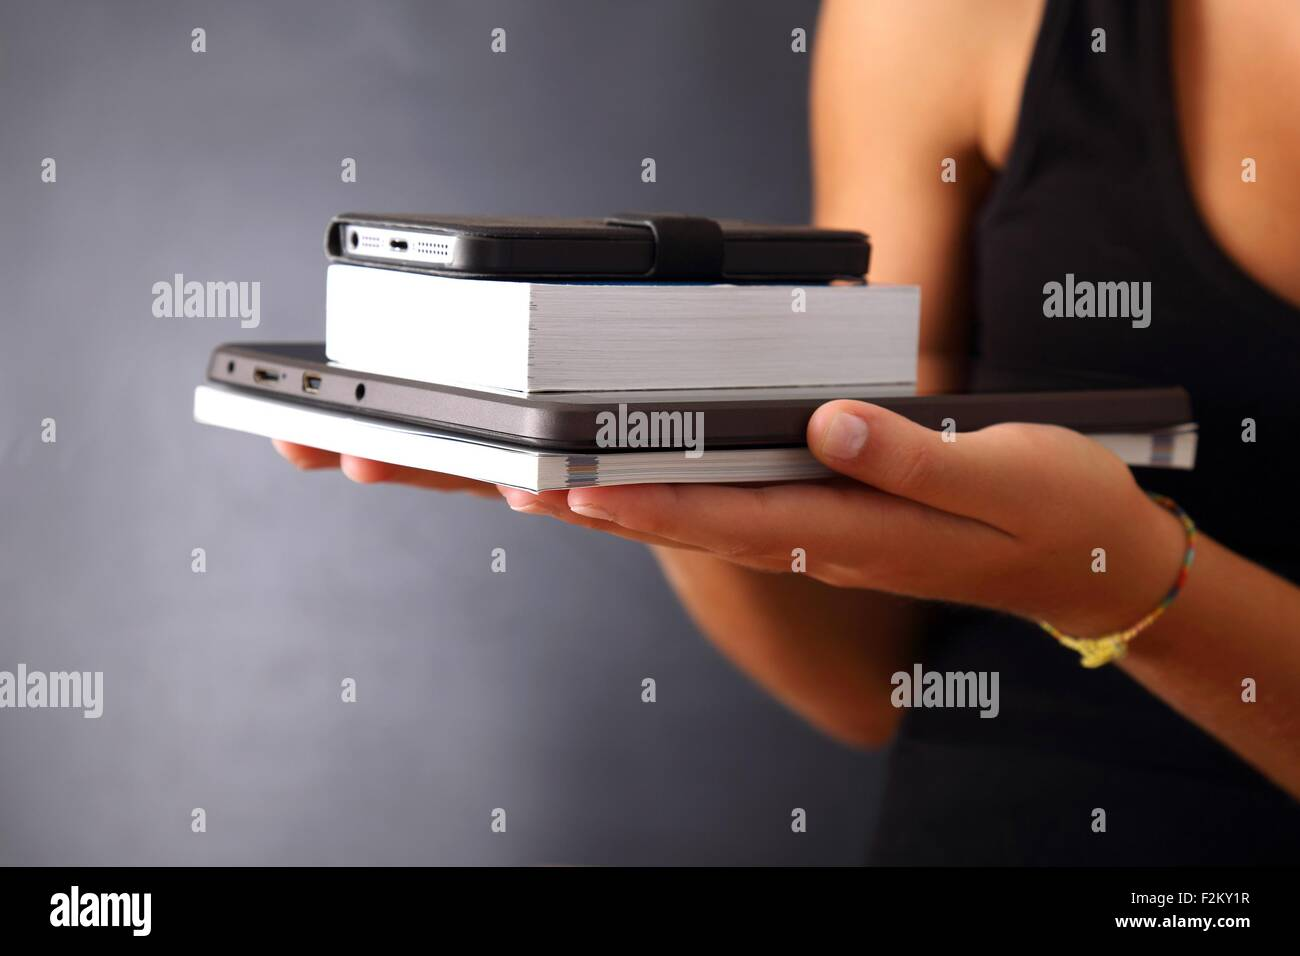 A tablet instead of books - Stock Image